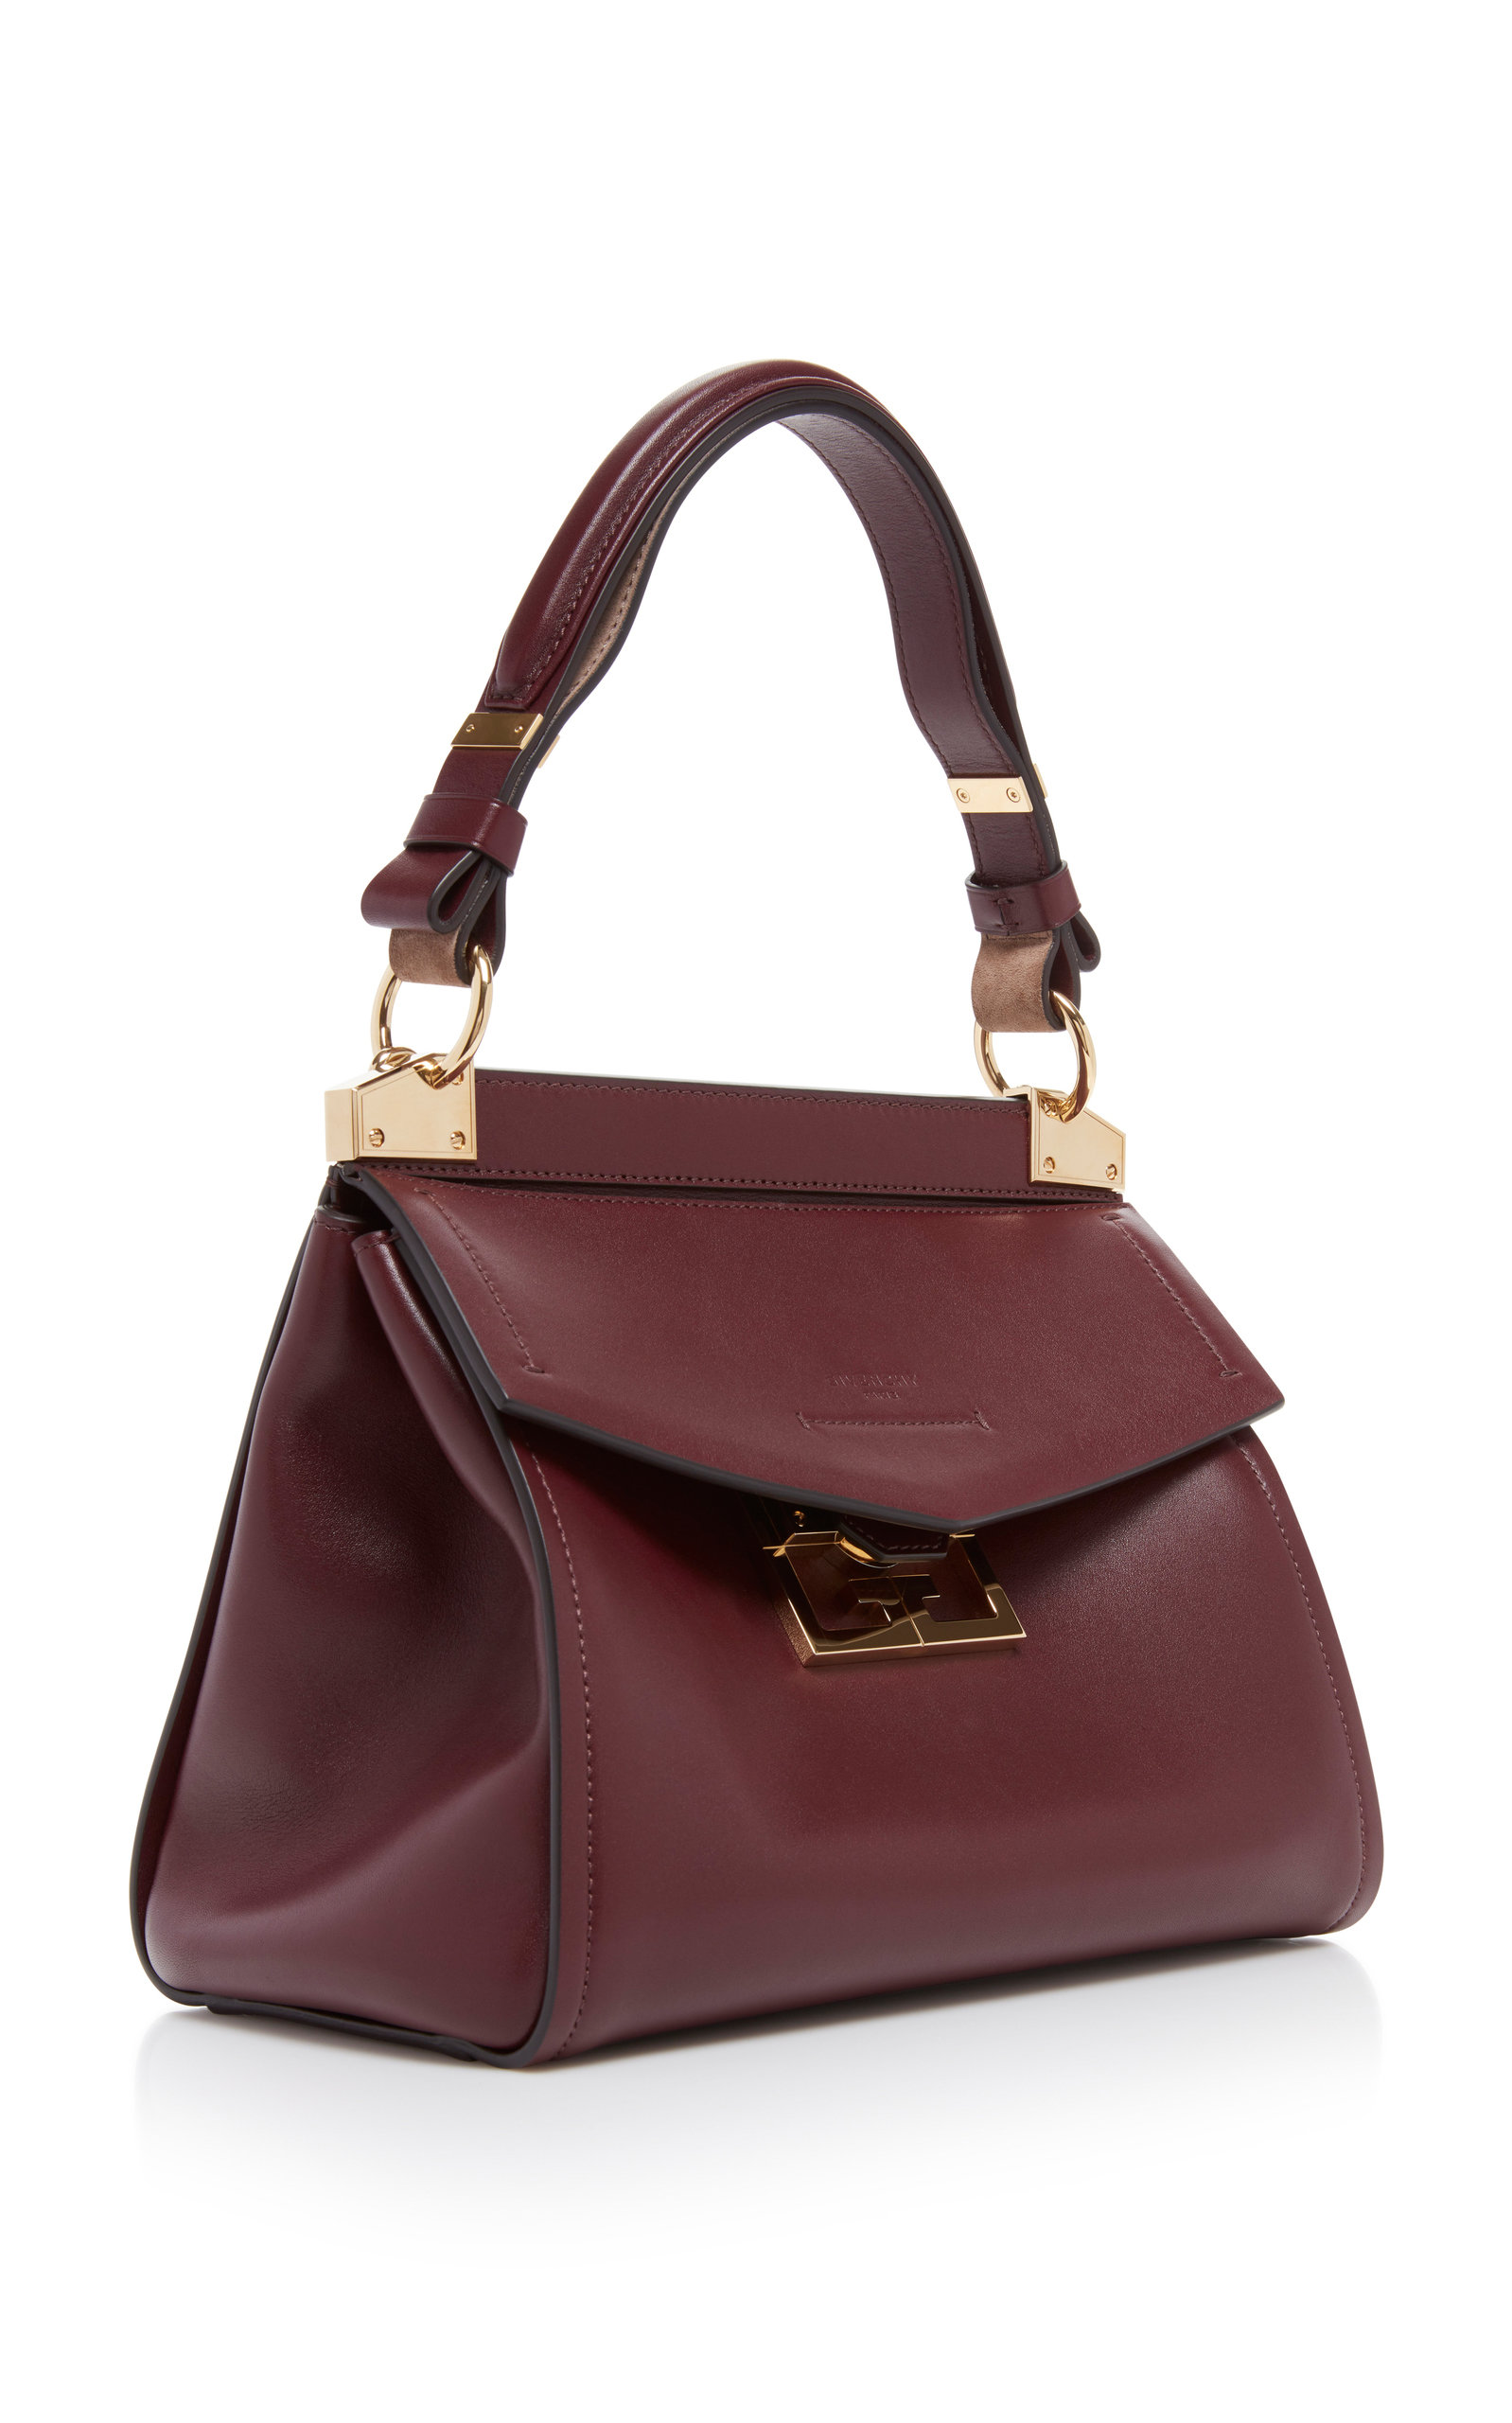 9bbbcbb45f3 GivenchyMystic Small Leather Bag. CLOSE. Loading. Loading. Loading